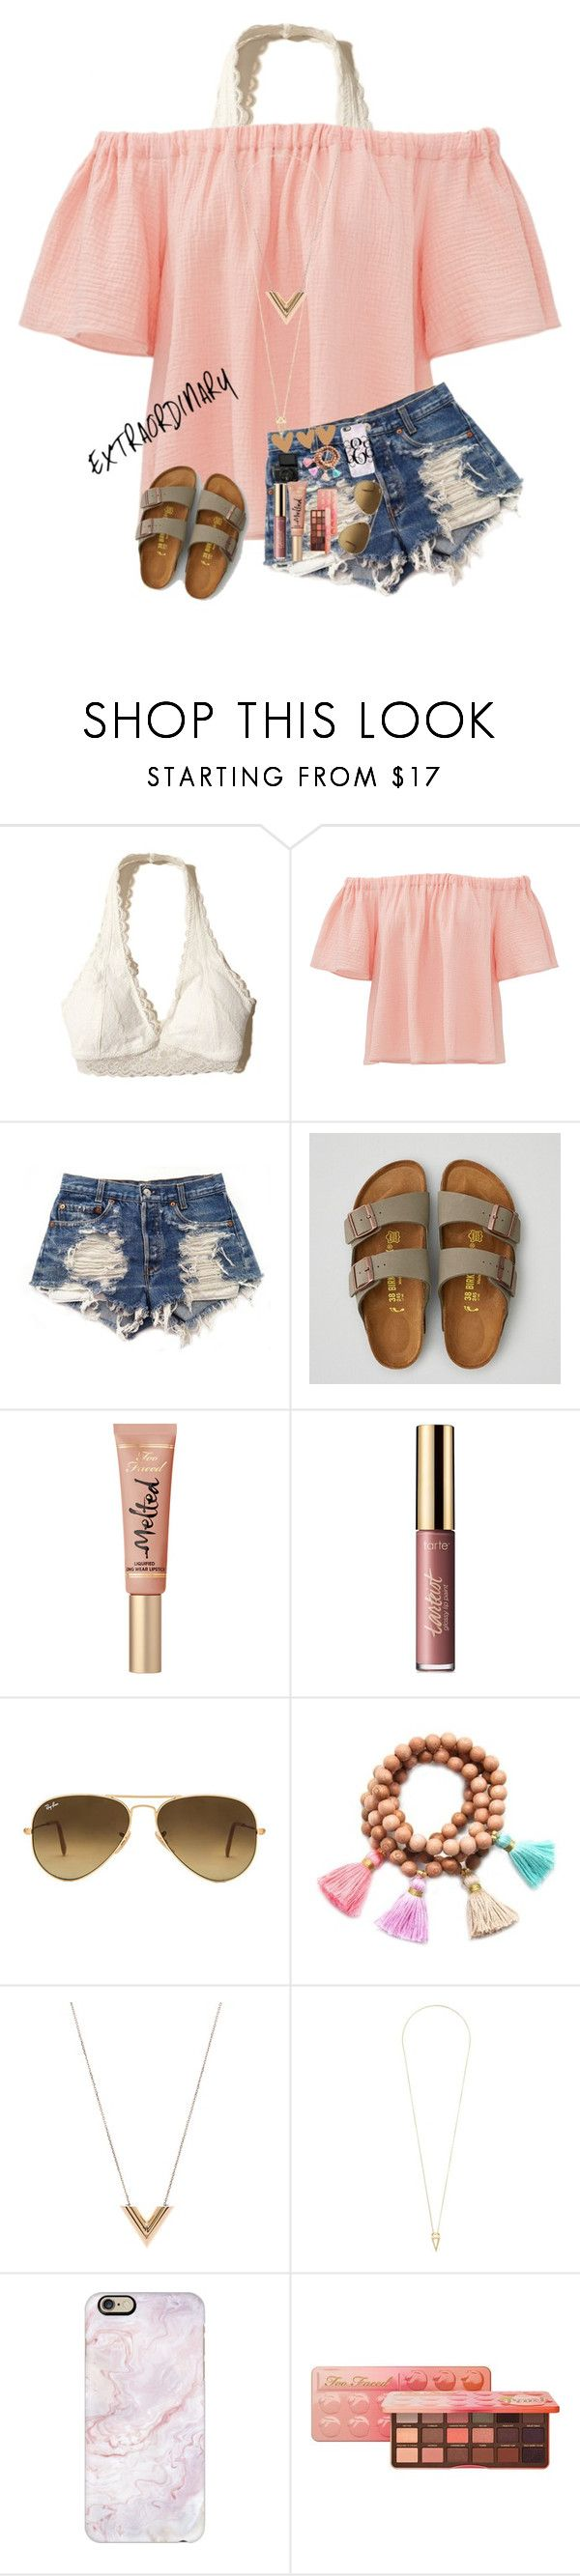 """""""(Extraordinary)"""" by mckenna1 ❤ liked on Polyvore featuring Hollister Co., Rebecca Taylor, Levi's, American Eagle Outfitters, tarte, Ray-Ban, Gold & Gray, Louis Vuitton, Noor Fares and Casetify"""